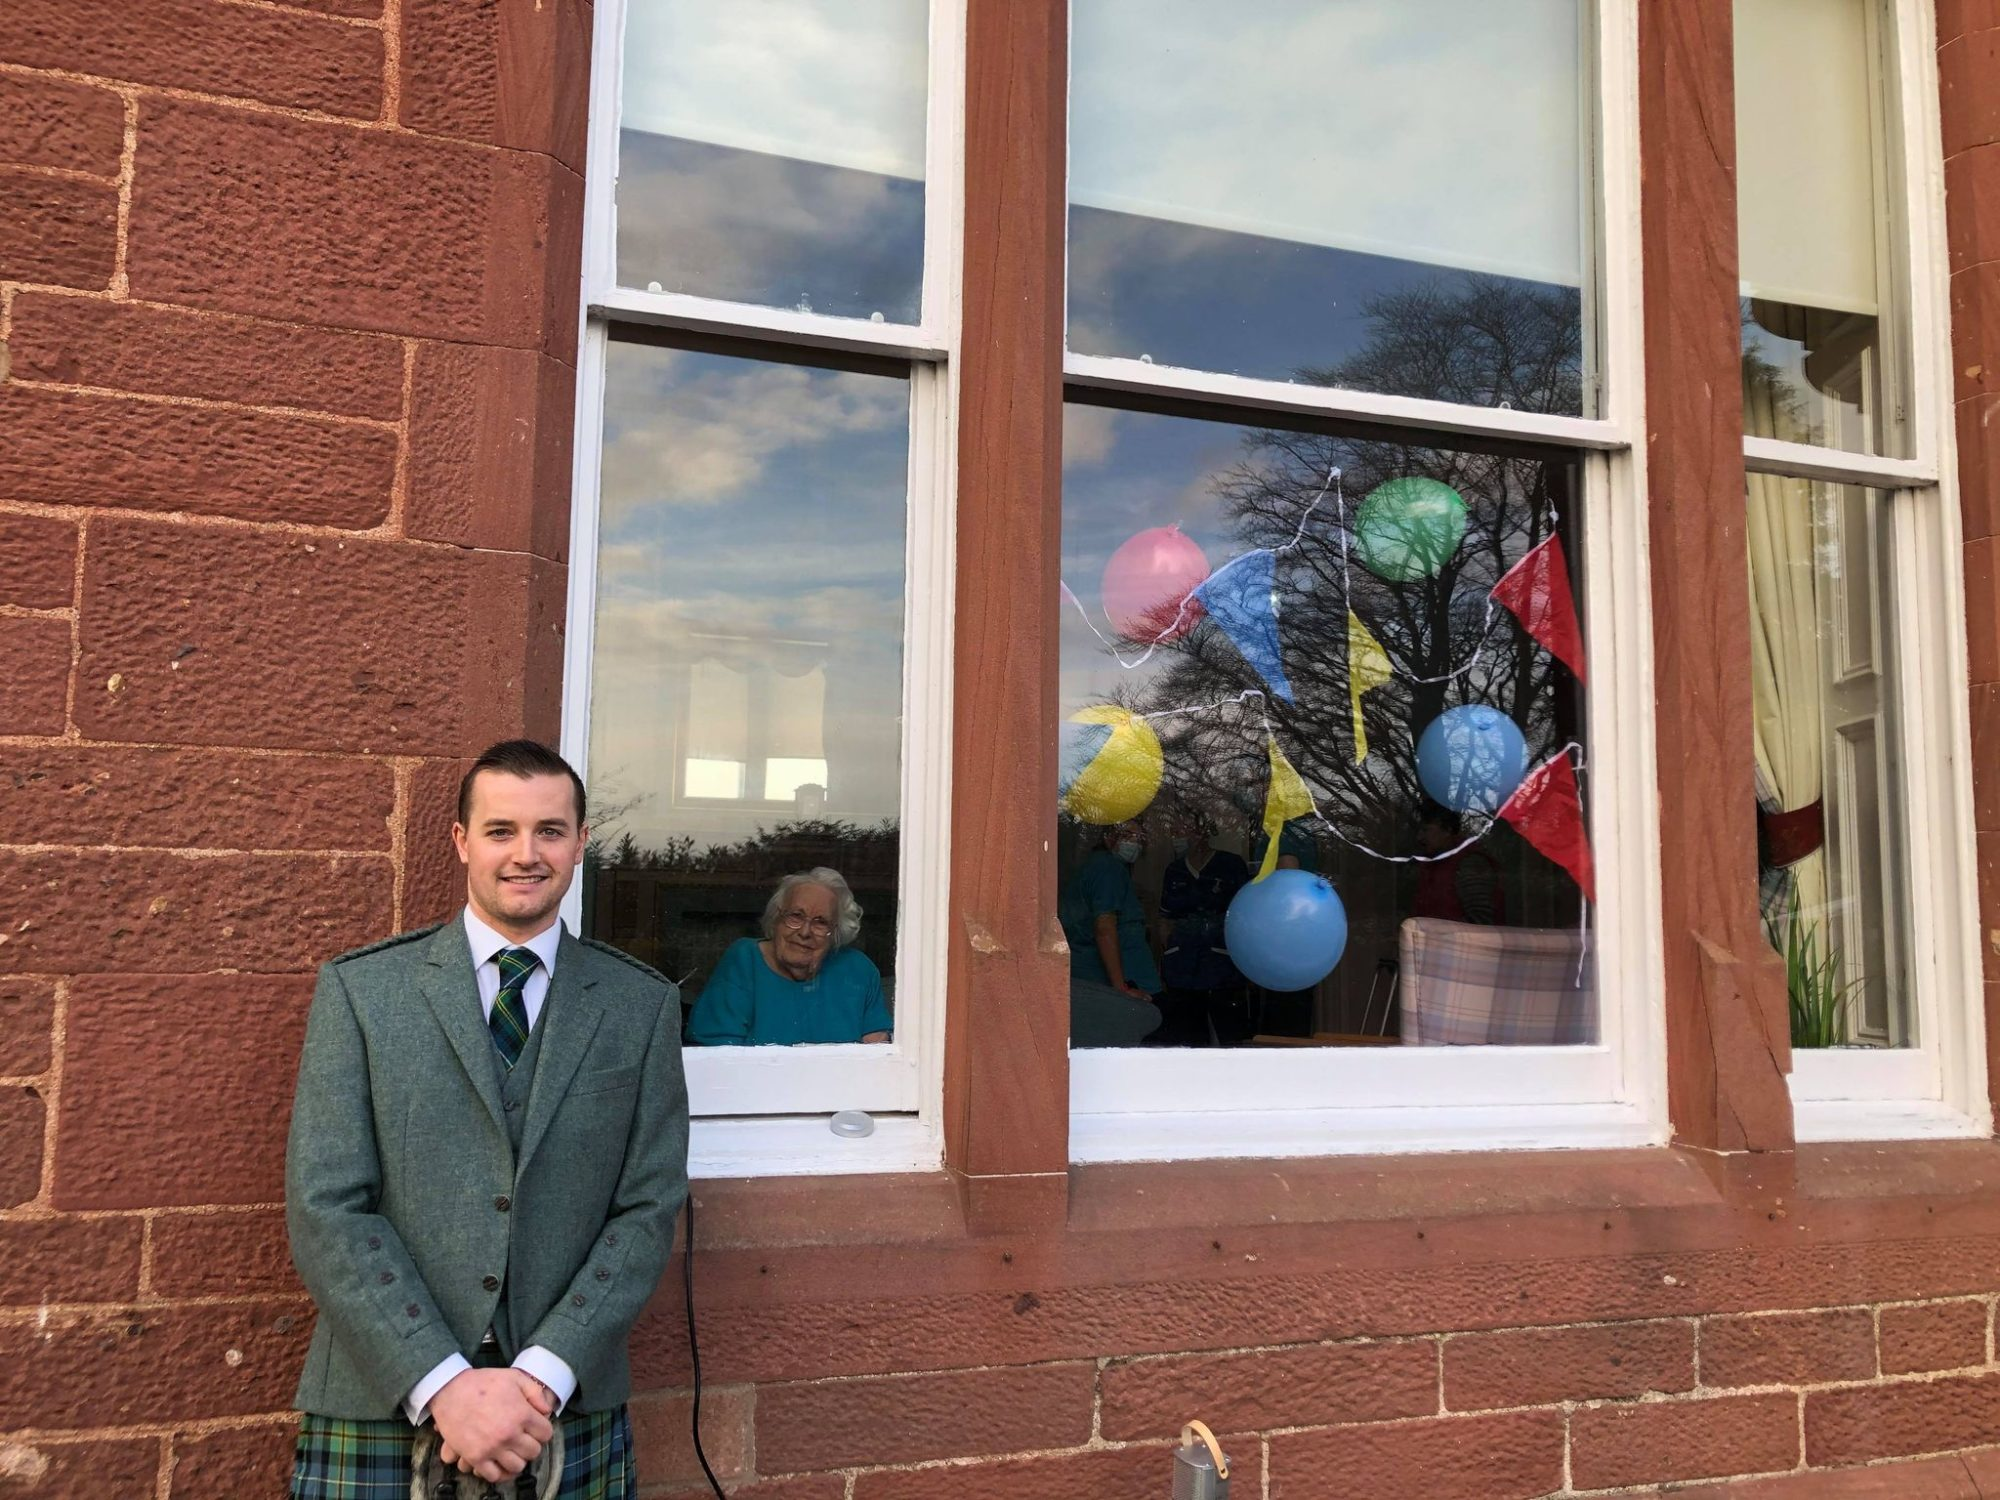 Grandson and his bride delight grandmother with care home window visit on wedding day